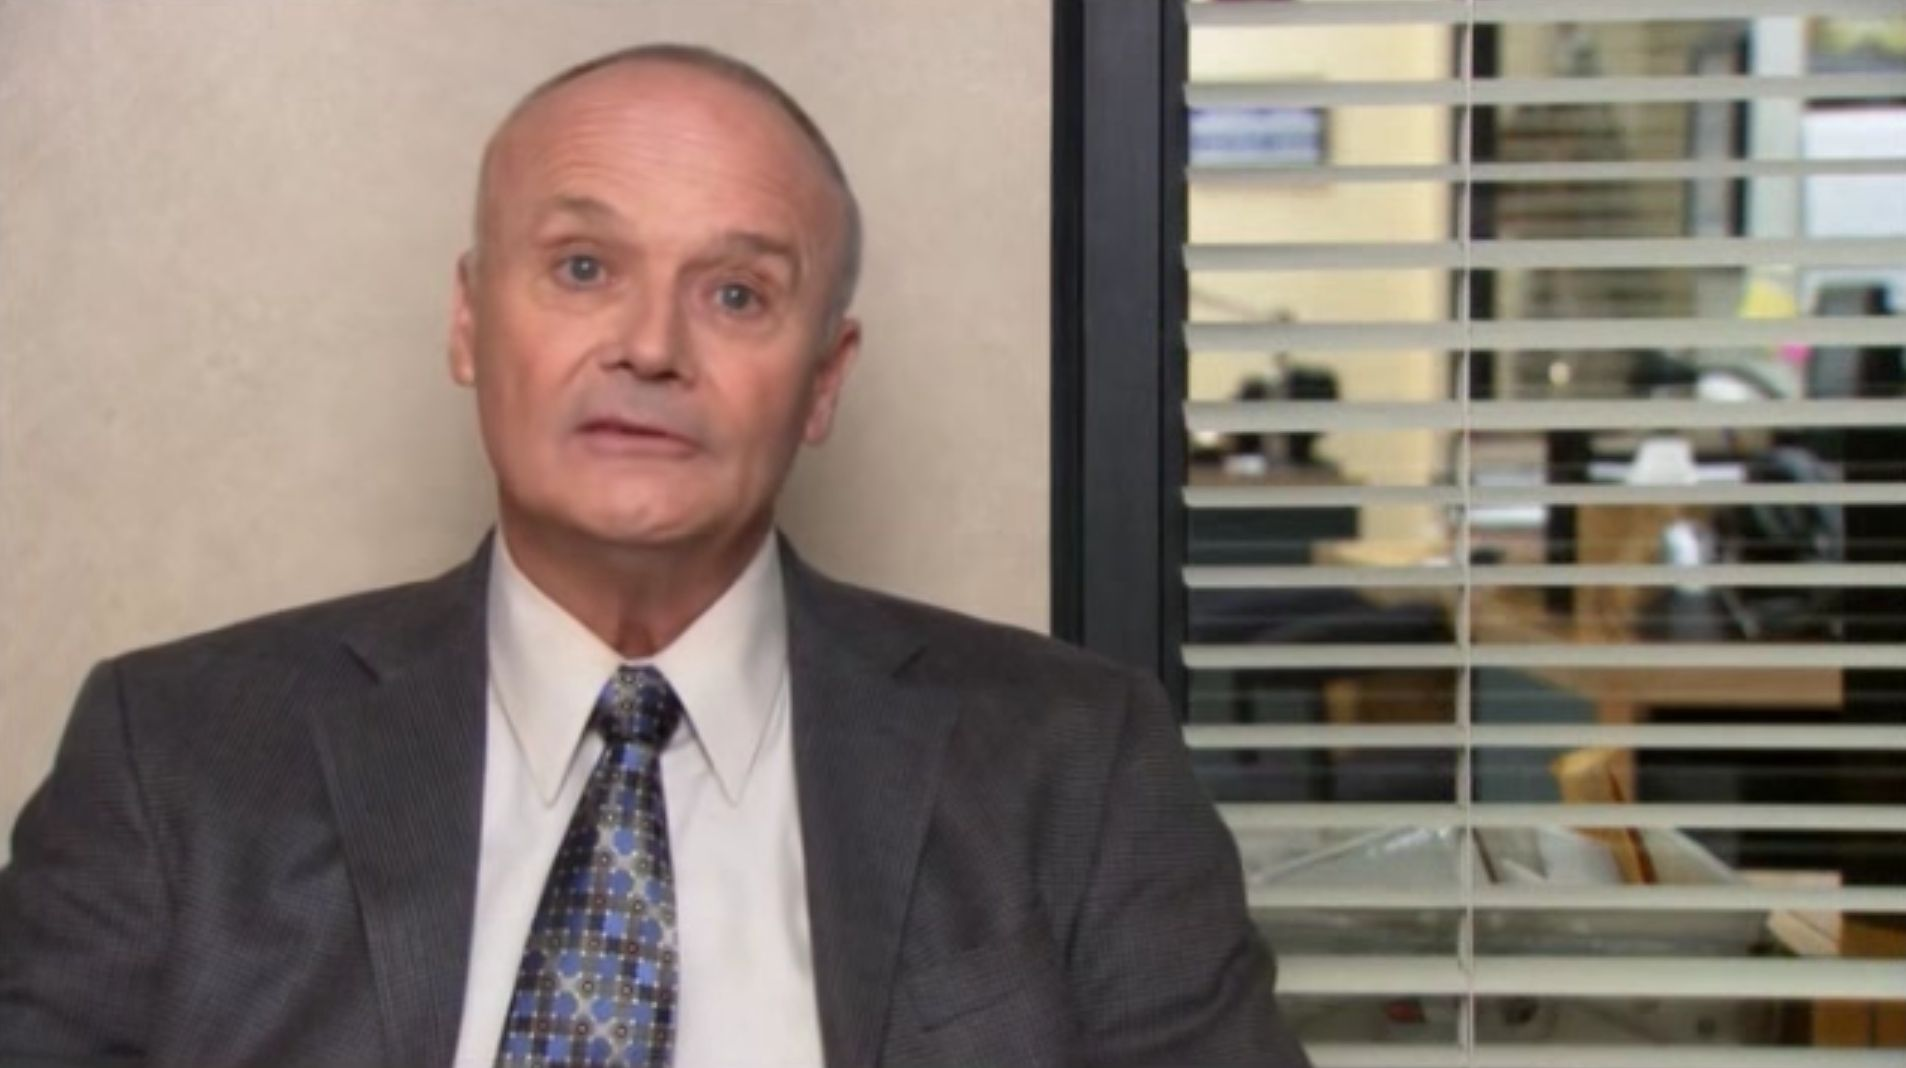 High Quality Creed The Office Blank Meme Template